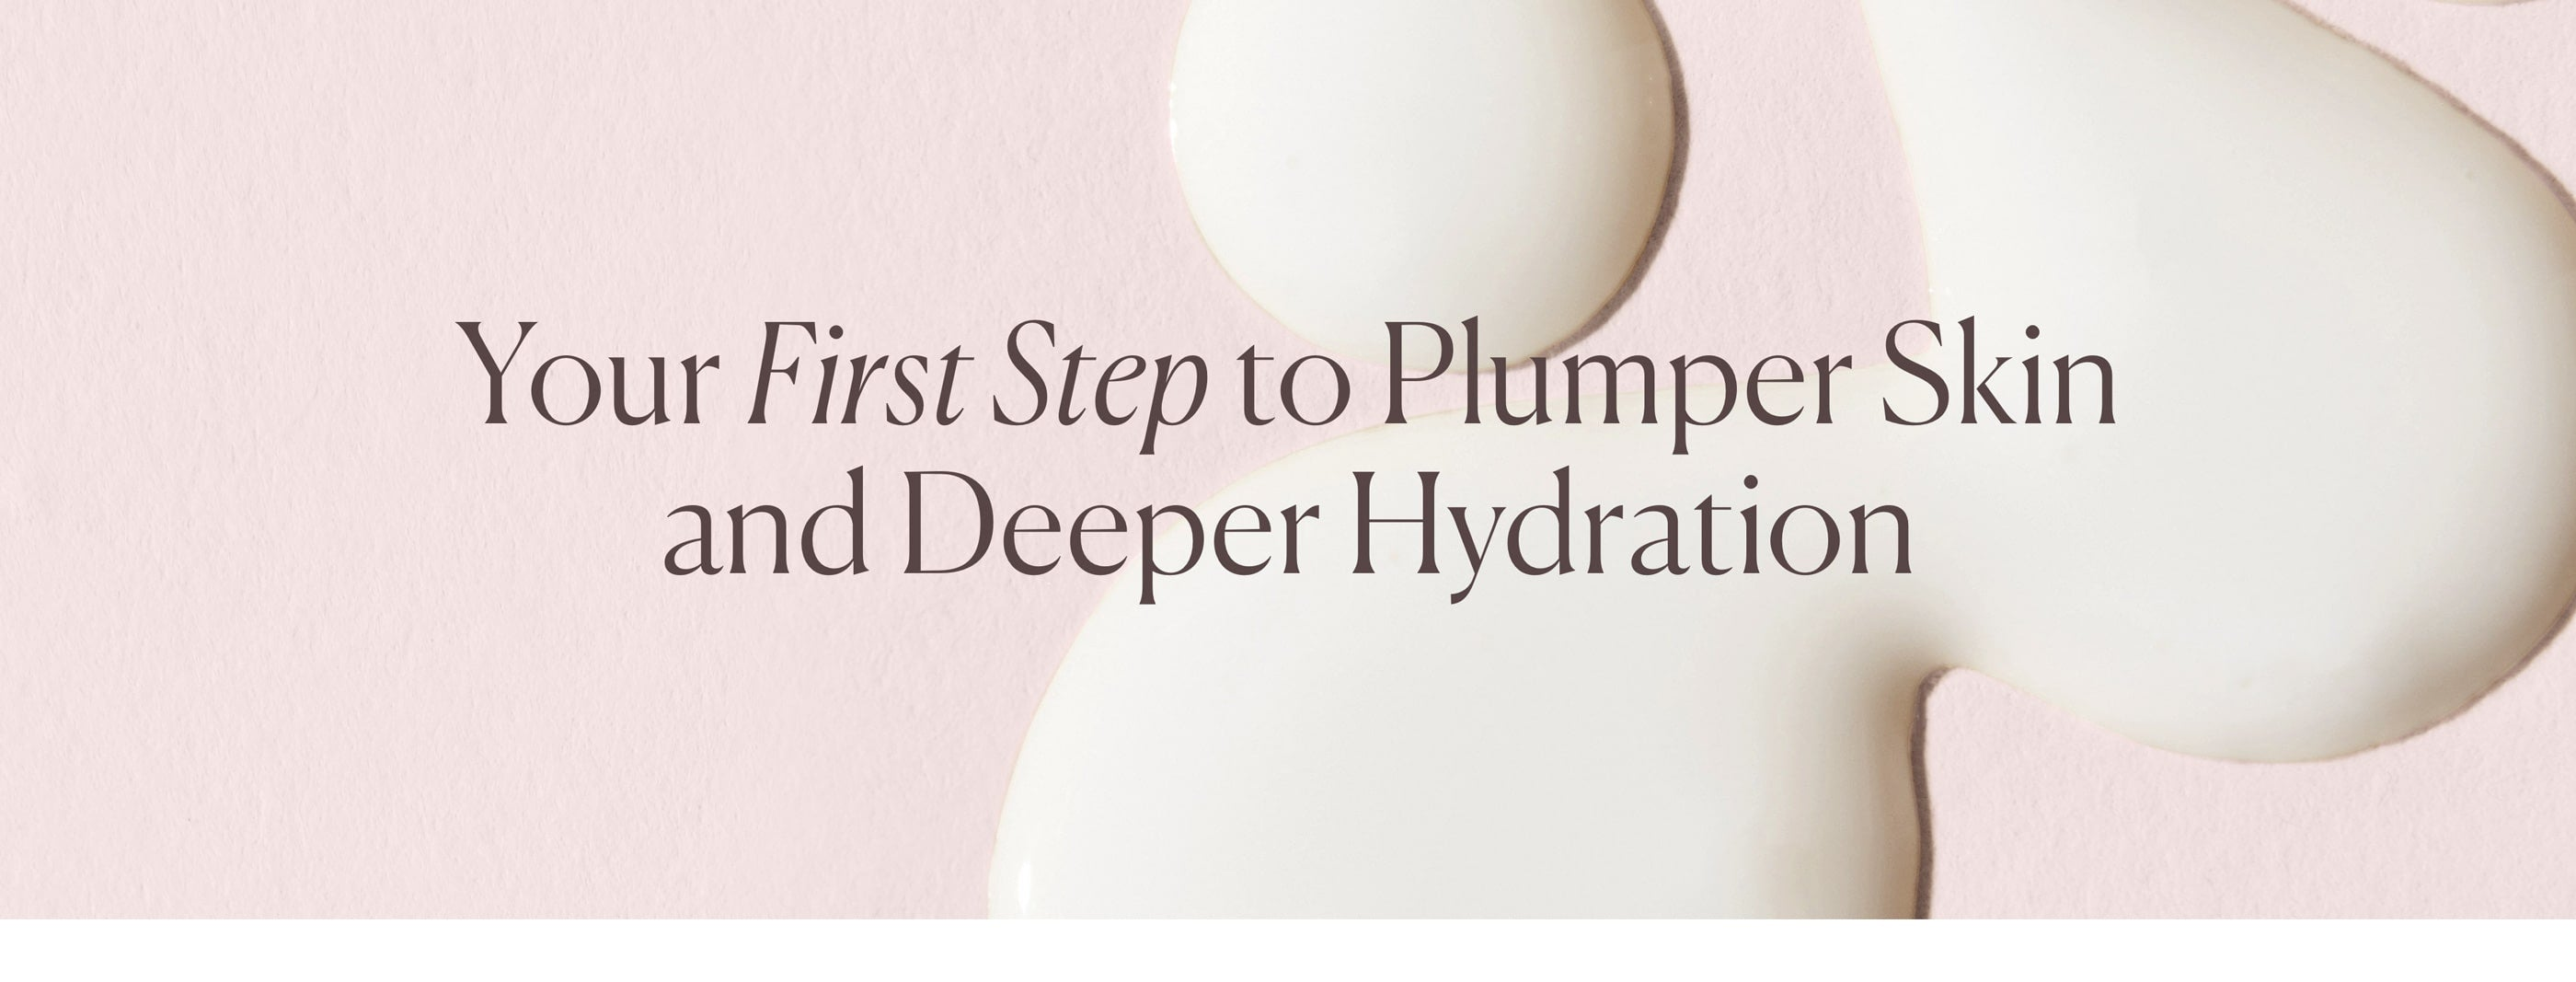 Plumper Skin and Deeper Hydration